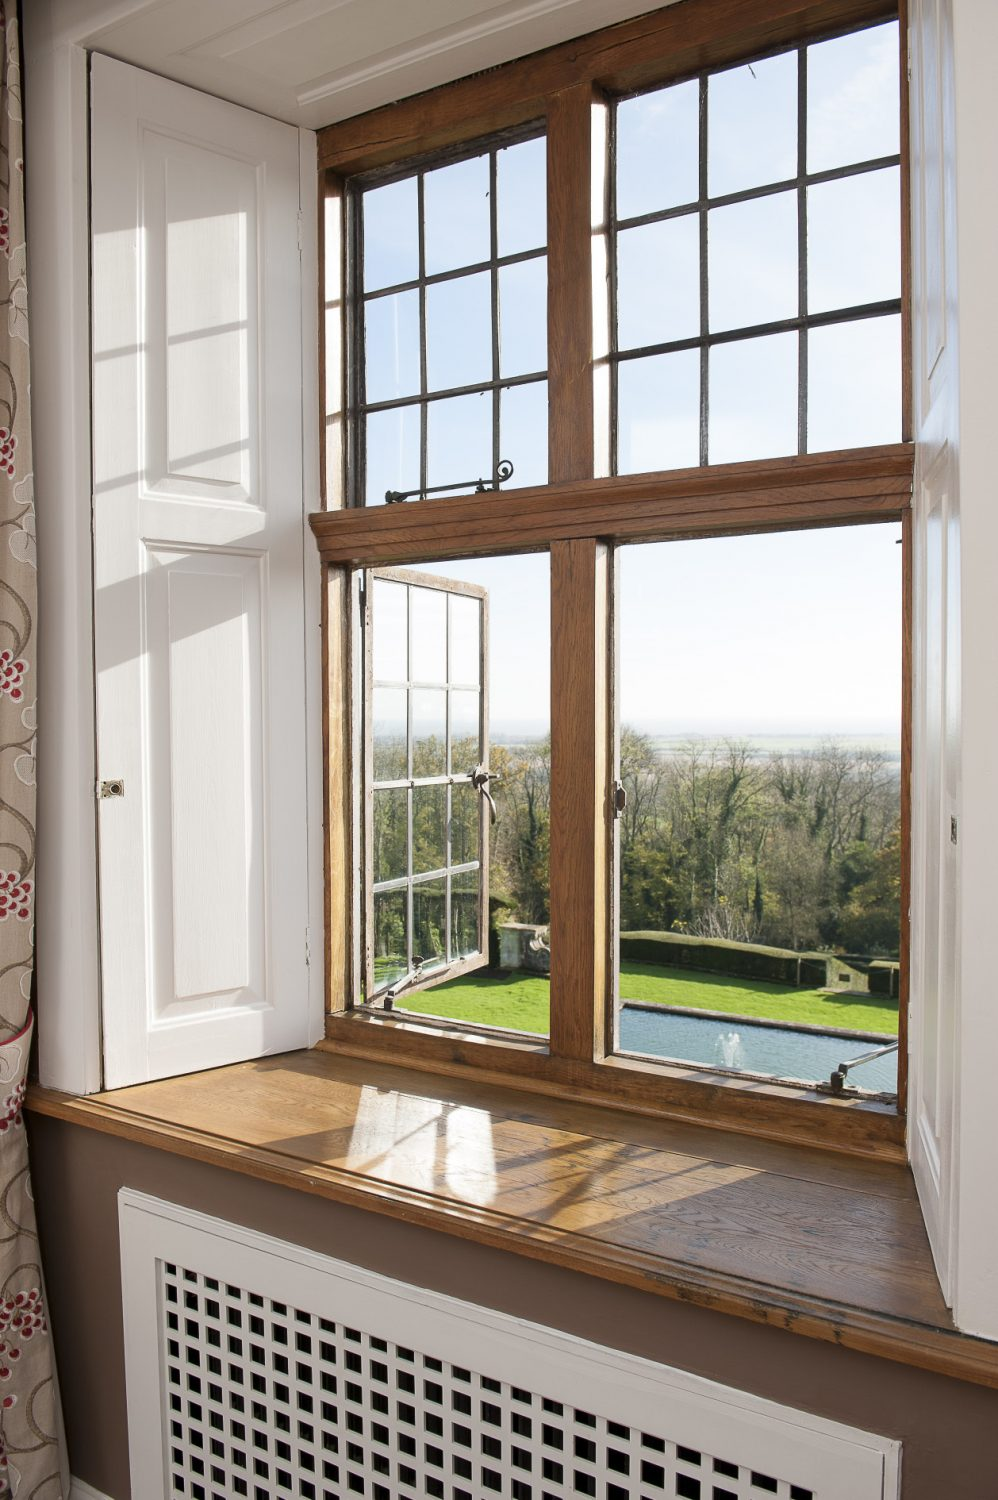 The bedrooms benefit from stunning views across the extensive gardens and out towards the sea.